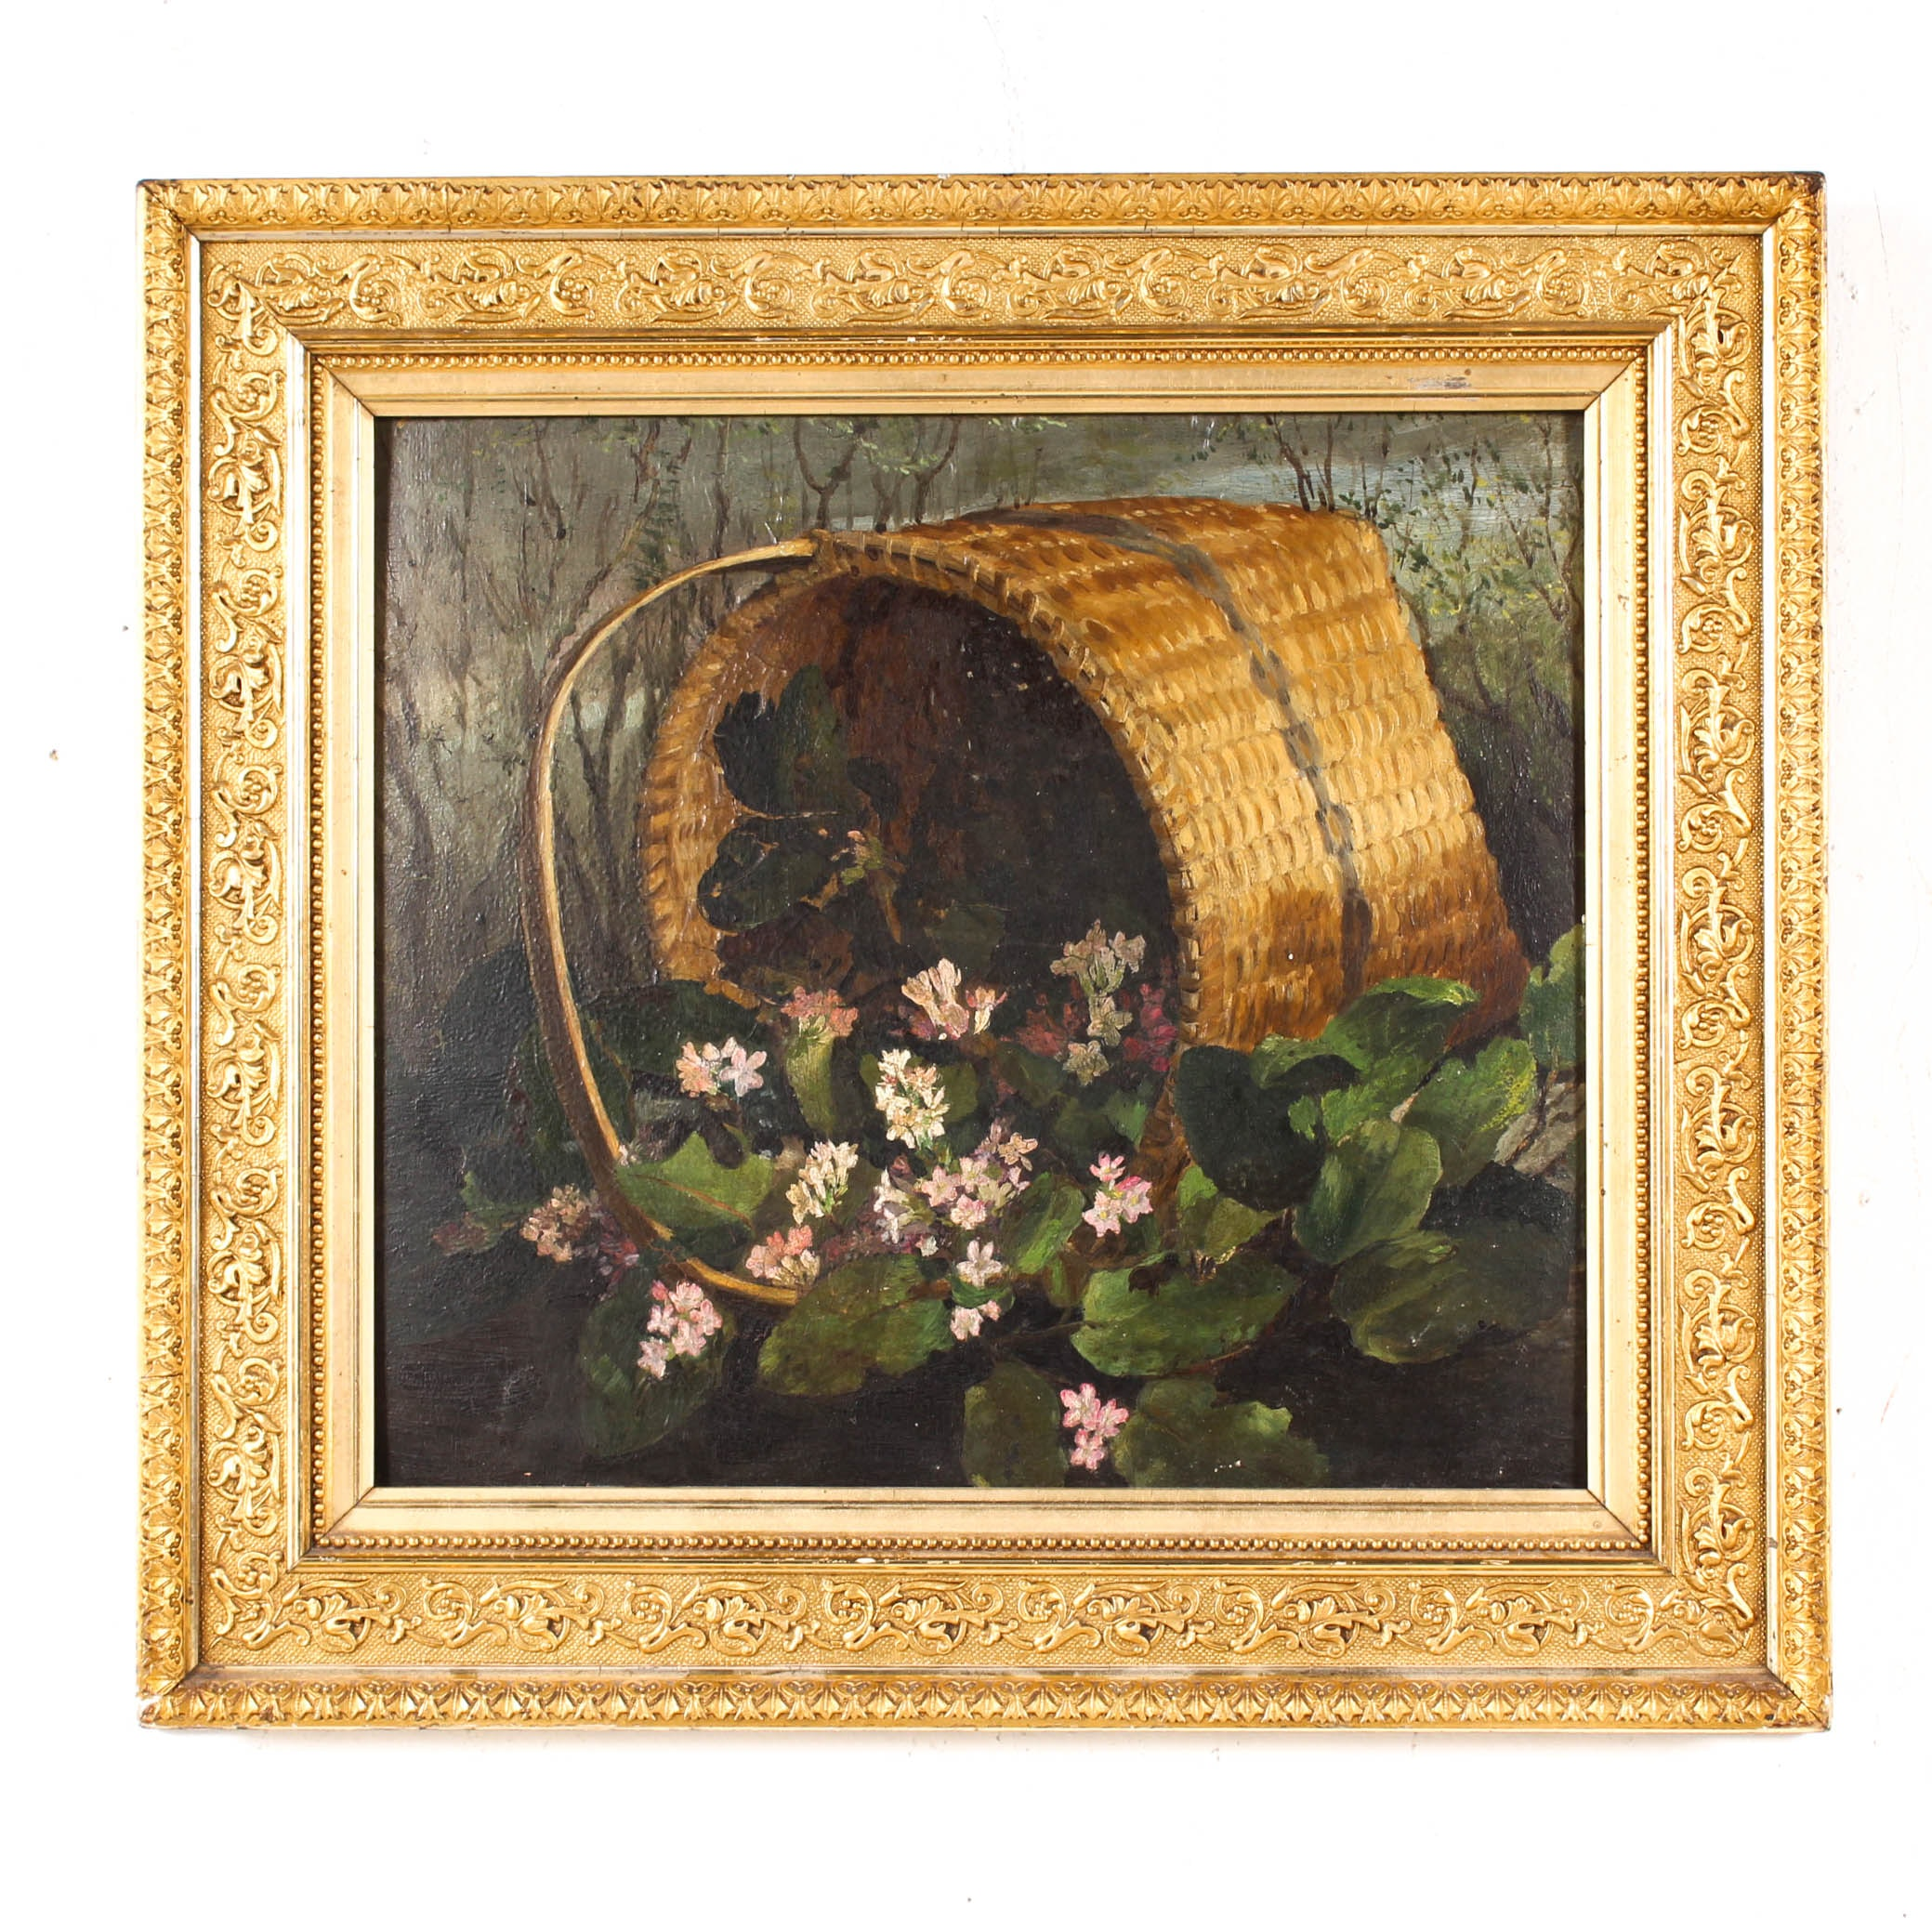 Victorian Still Life Oil Painting Depicting a Basket of Flowers